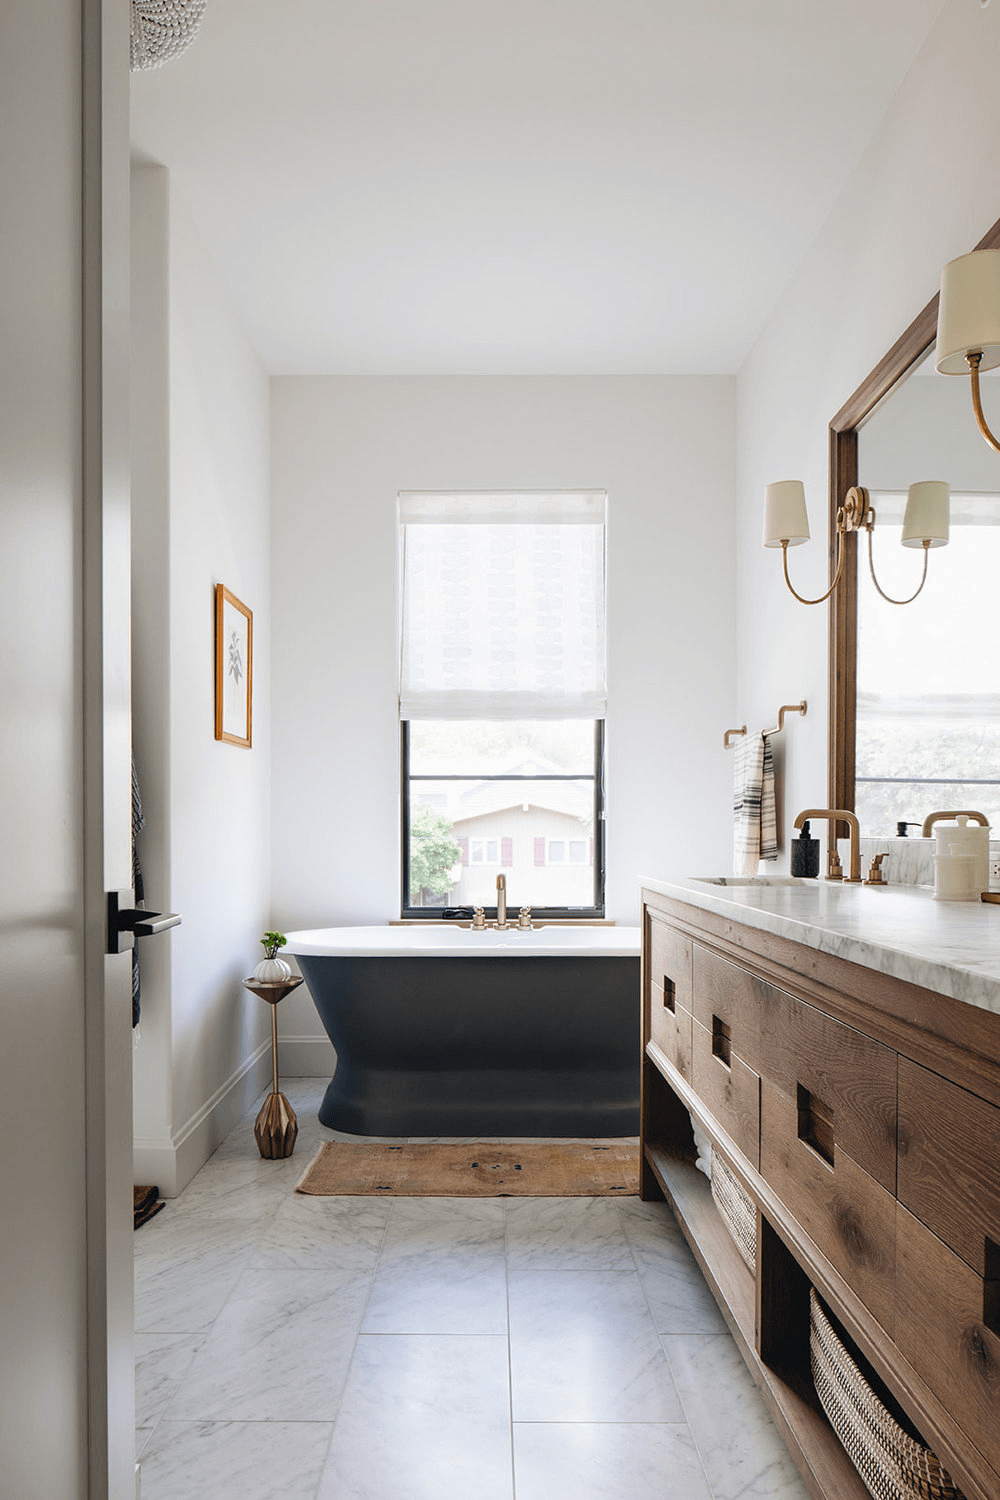 this is a farmhouse bathroom with claw foot bathtub, with stripped textile blinds(1)